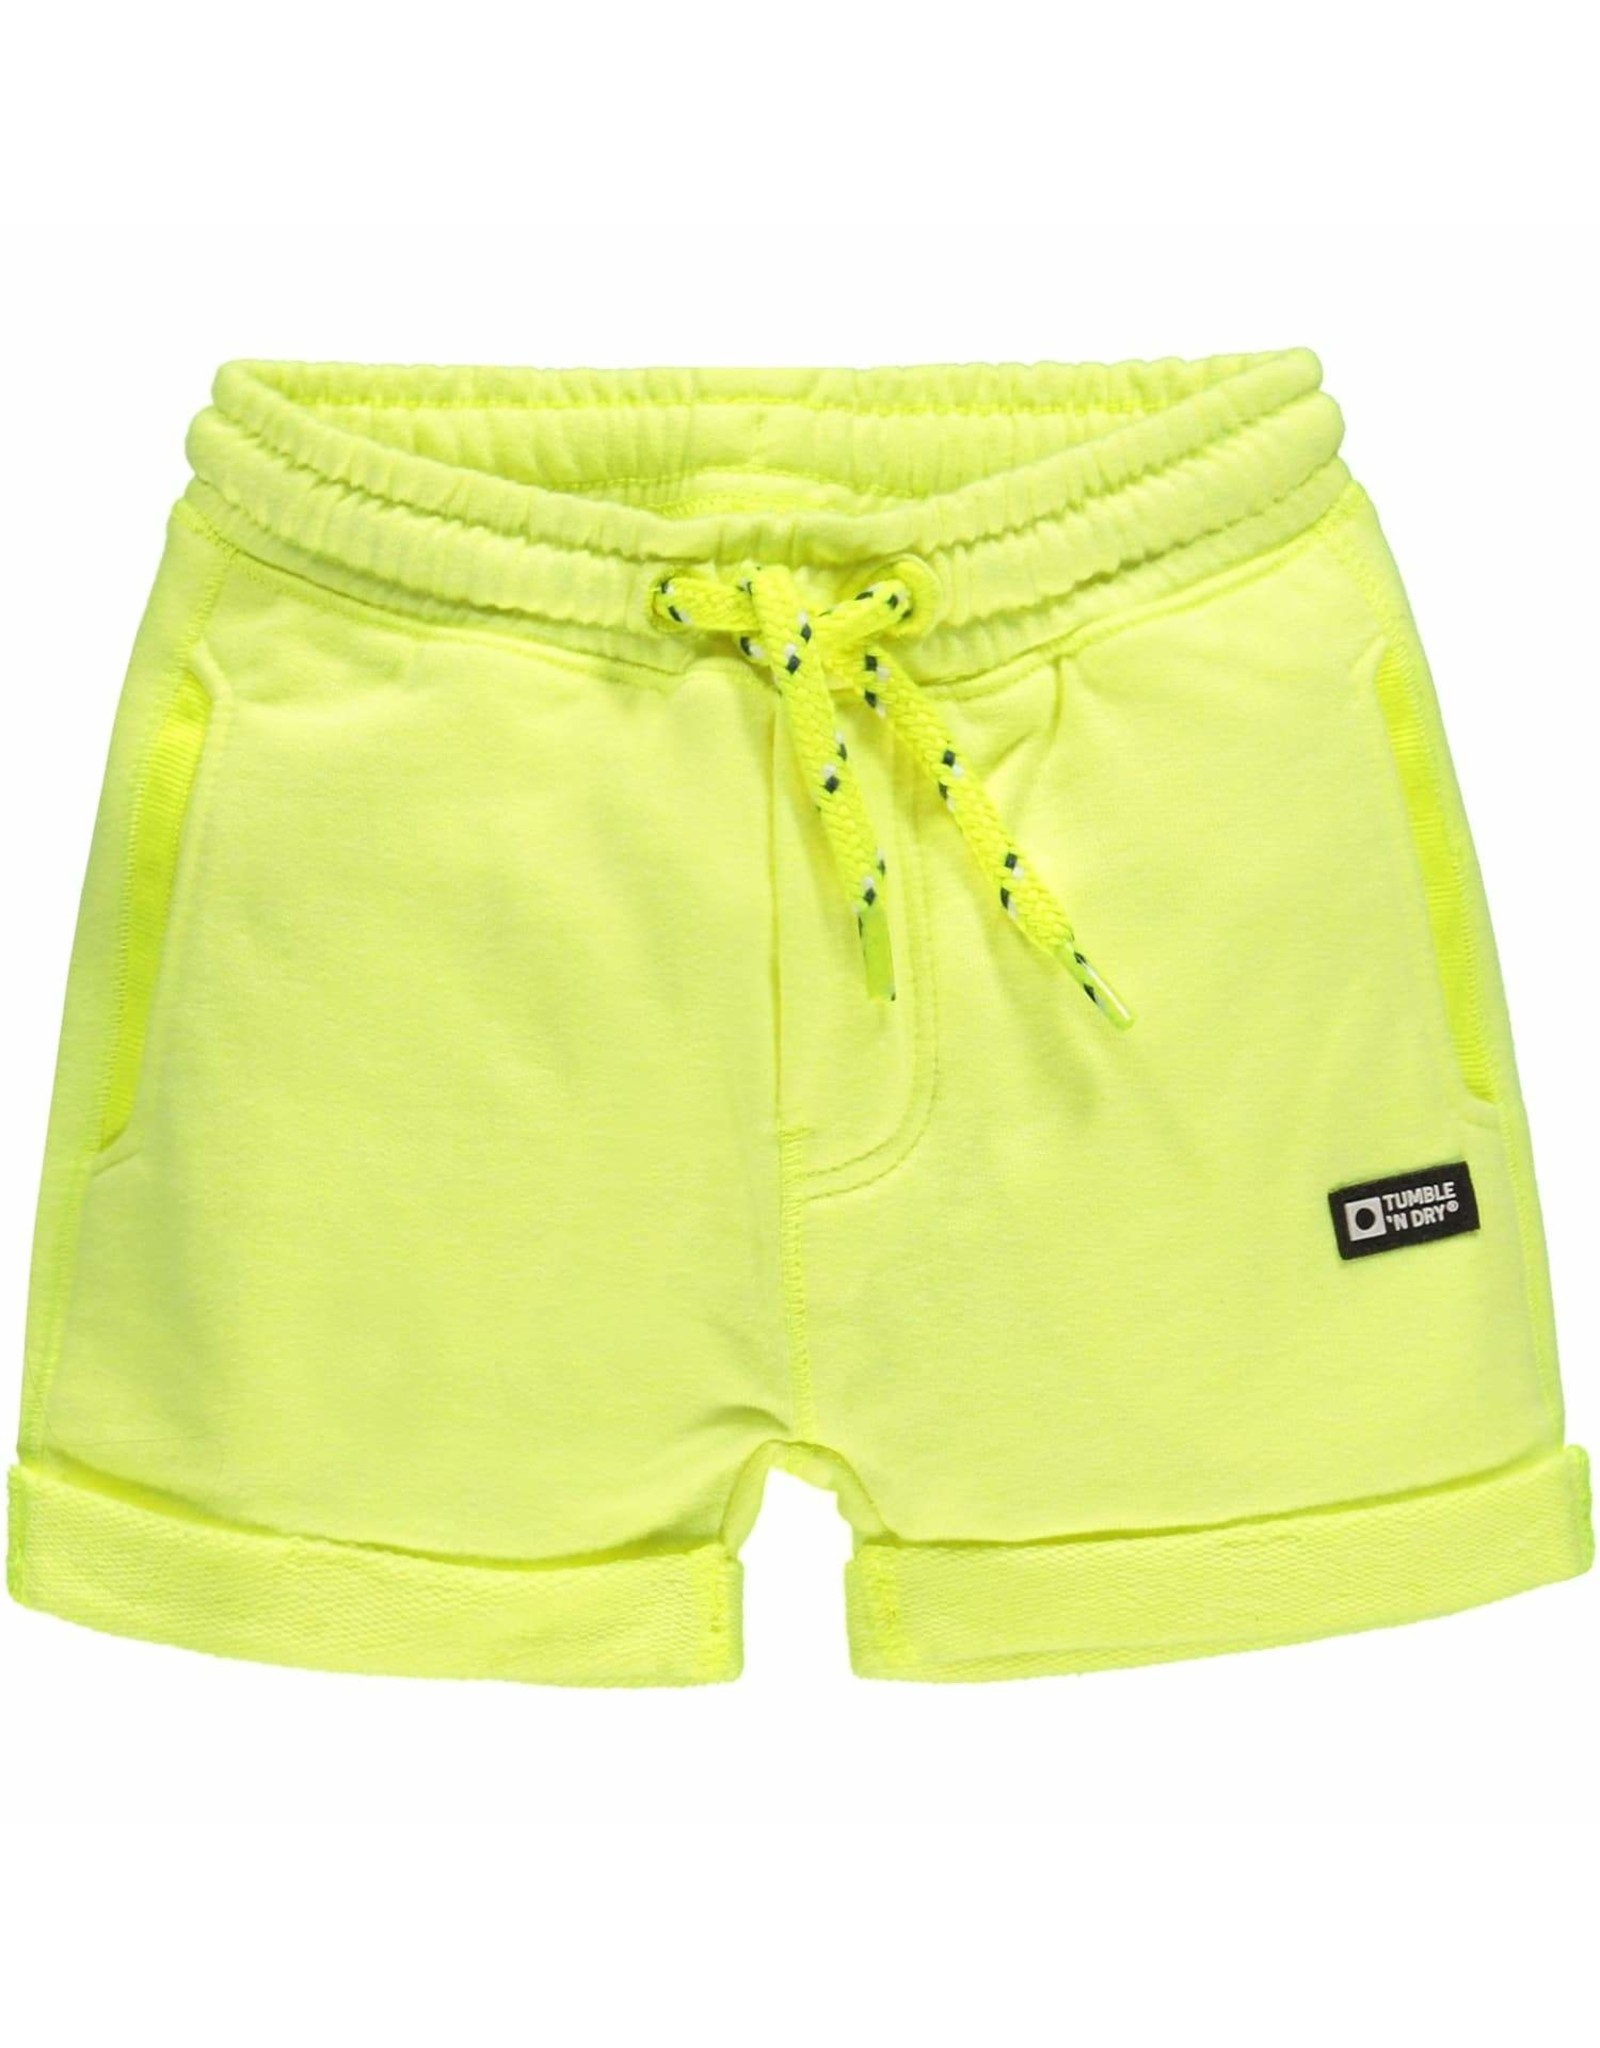 TUMBLE 'N DRY Tumble 'N Dry Boys Lo - Tjester Safety Yellow